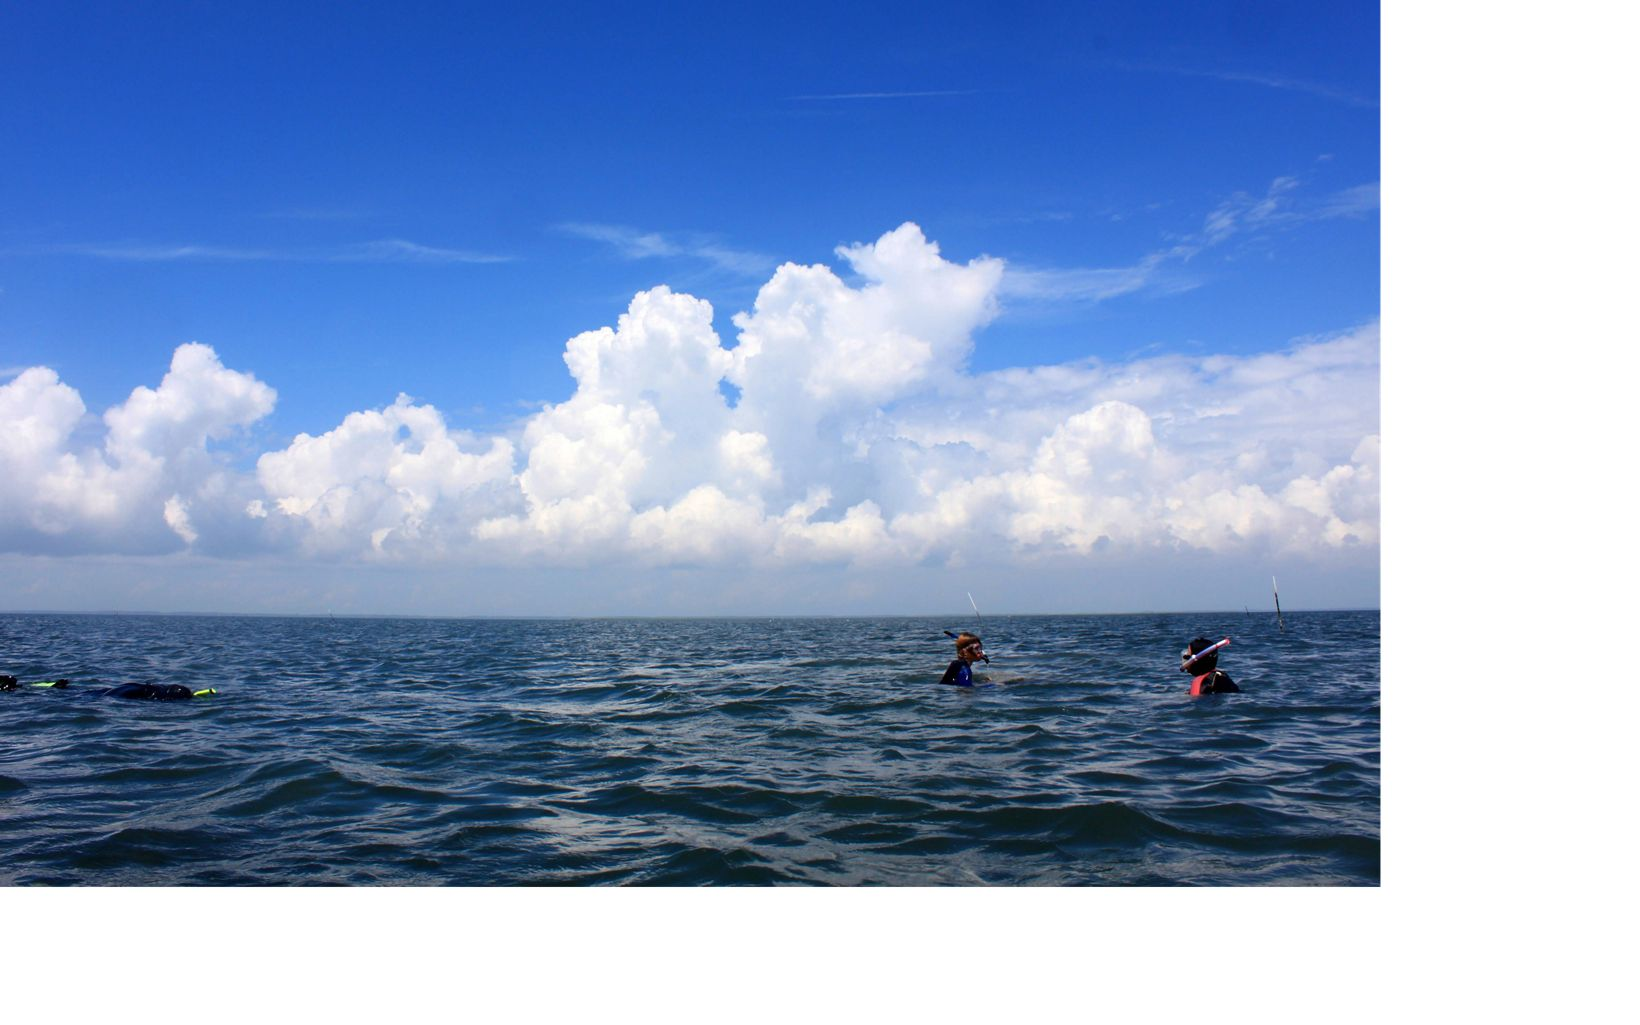 The heads of two people bob above the water while a third person floats and snorkels along the surface.